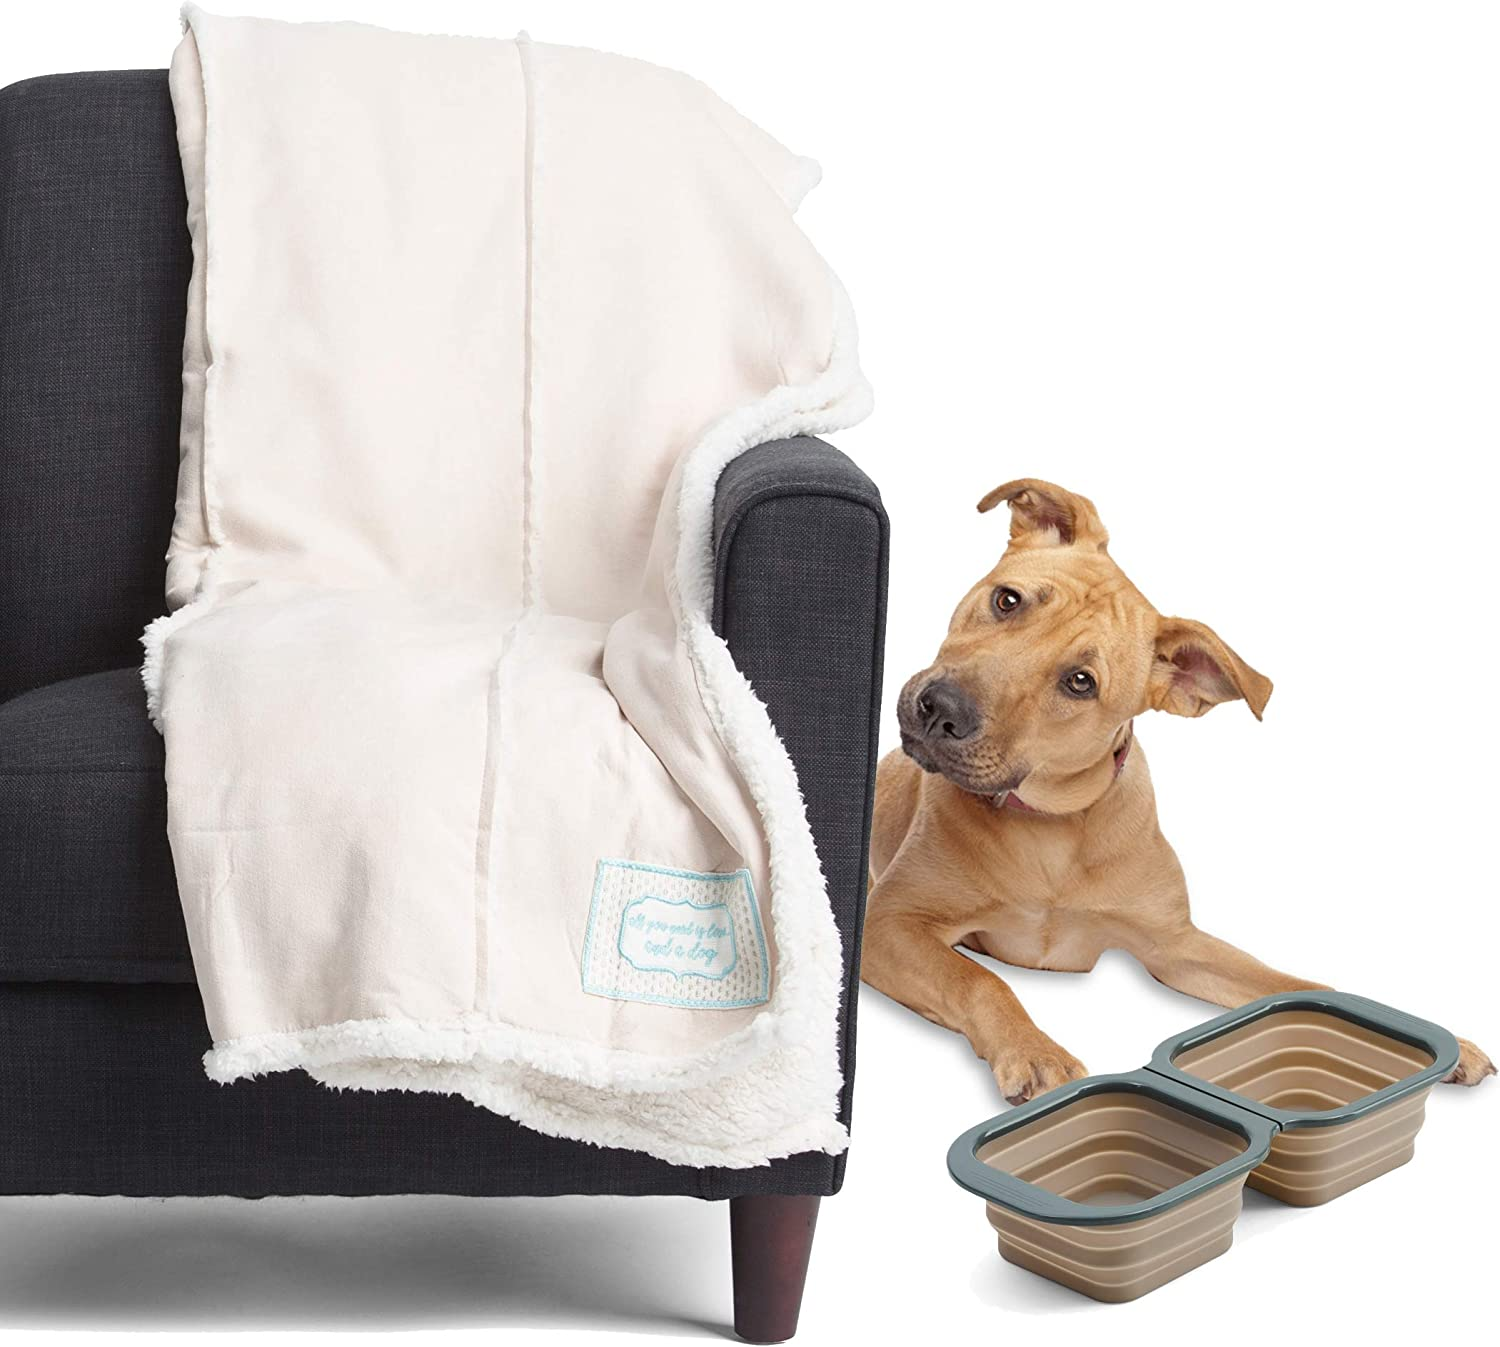 Big & Awesome Large 60 x 50 Dog Pet Throw Reverse to Sherpa Bundle with Collapsible Foldable Smart Pet Feeder